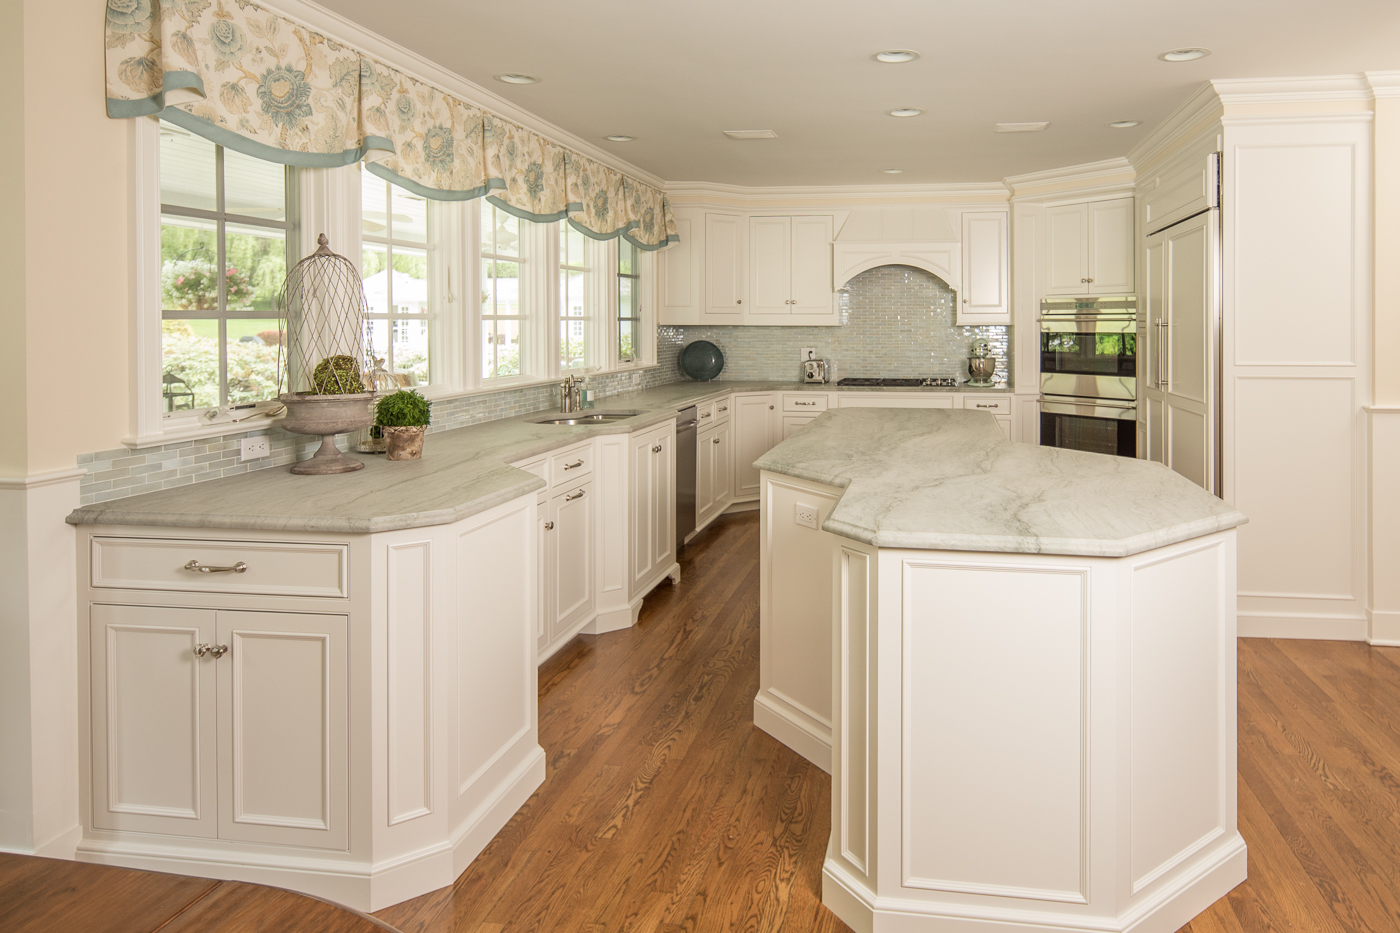 ackleycabinet cabinets for kitchen Custom cabinets kitchen design Ackley Cabinet Ridgfield CT